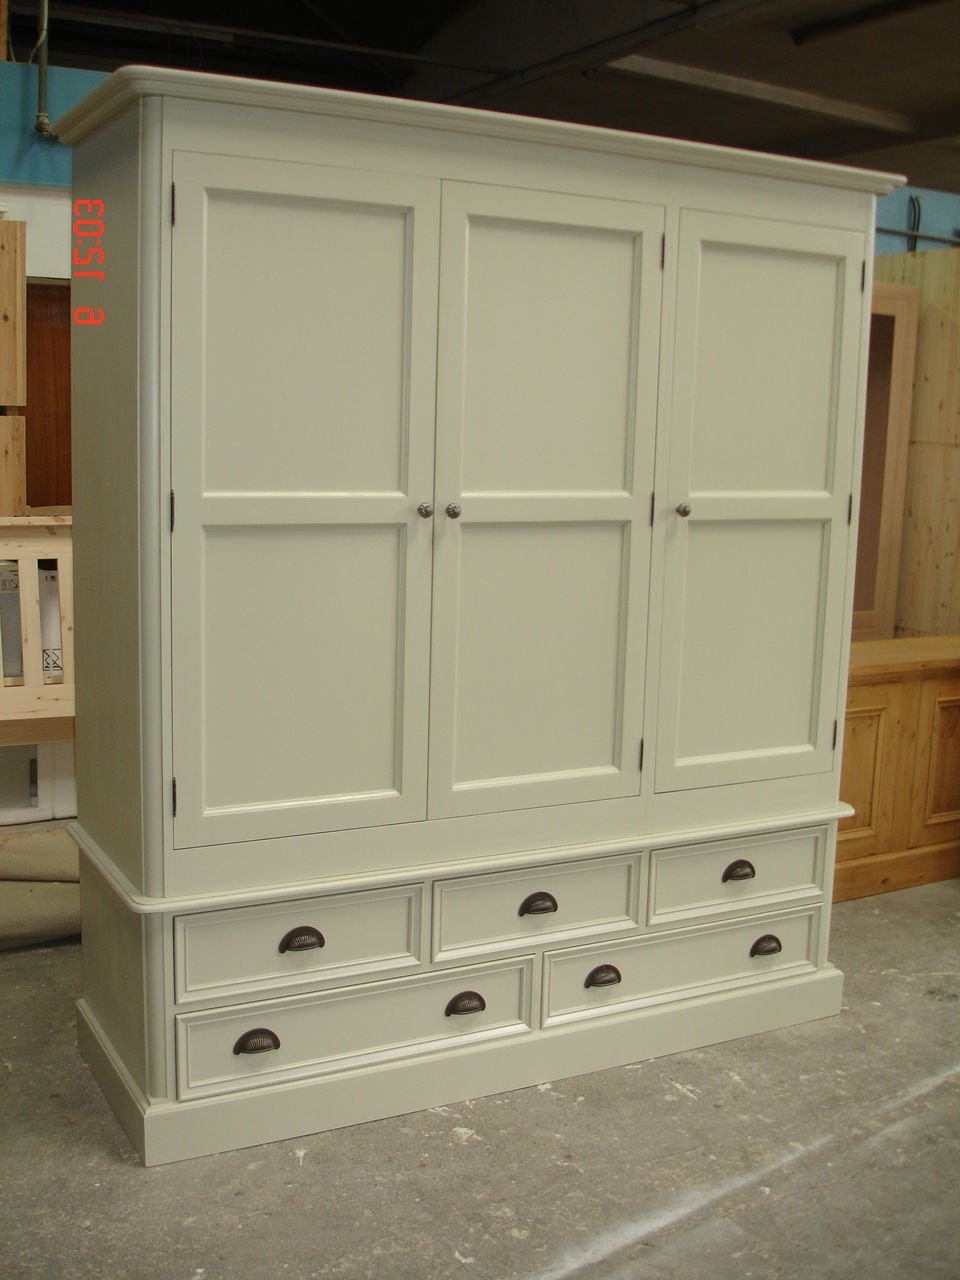 Ivory Painted Large 3 Door Solid Pine Victorian Style Shabby Chic Intended For Most Current Shabby Chic Pine Wardrobes (View 7 of 15)